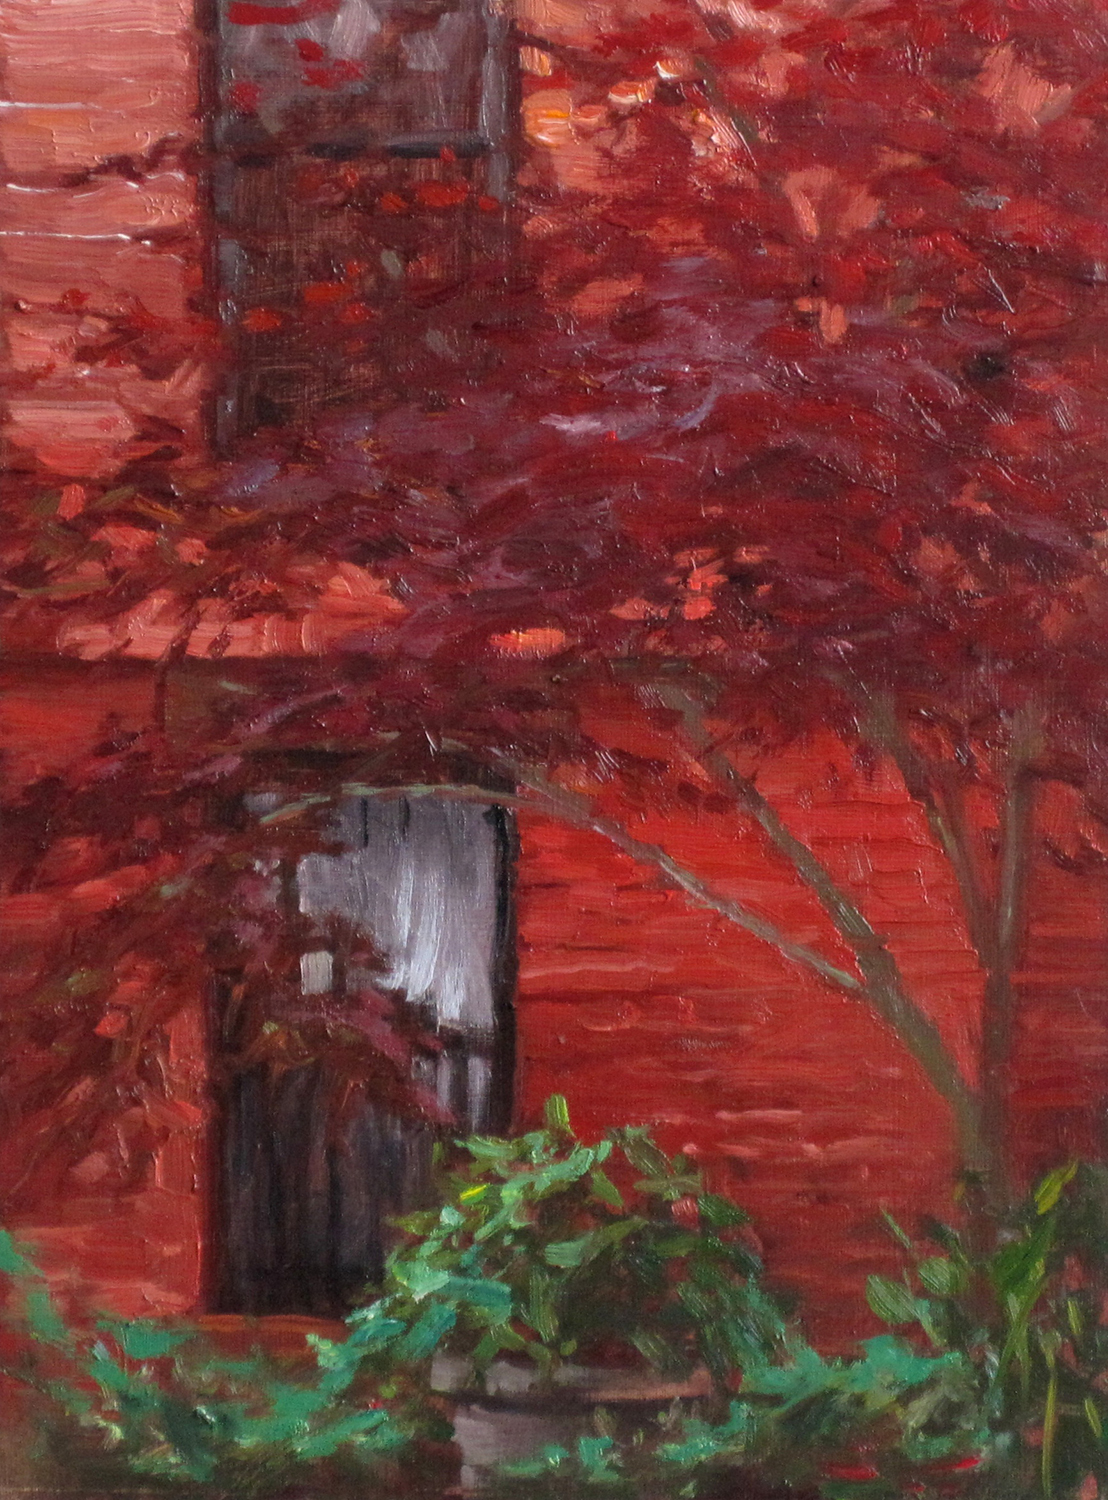 W-NITC-Red Maple Against Red-Dalrymple-9x12-oil on board-2011-SOLD.jpg